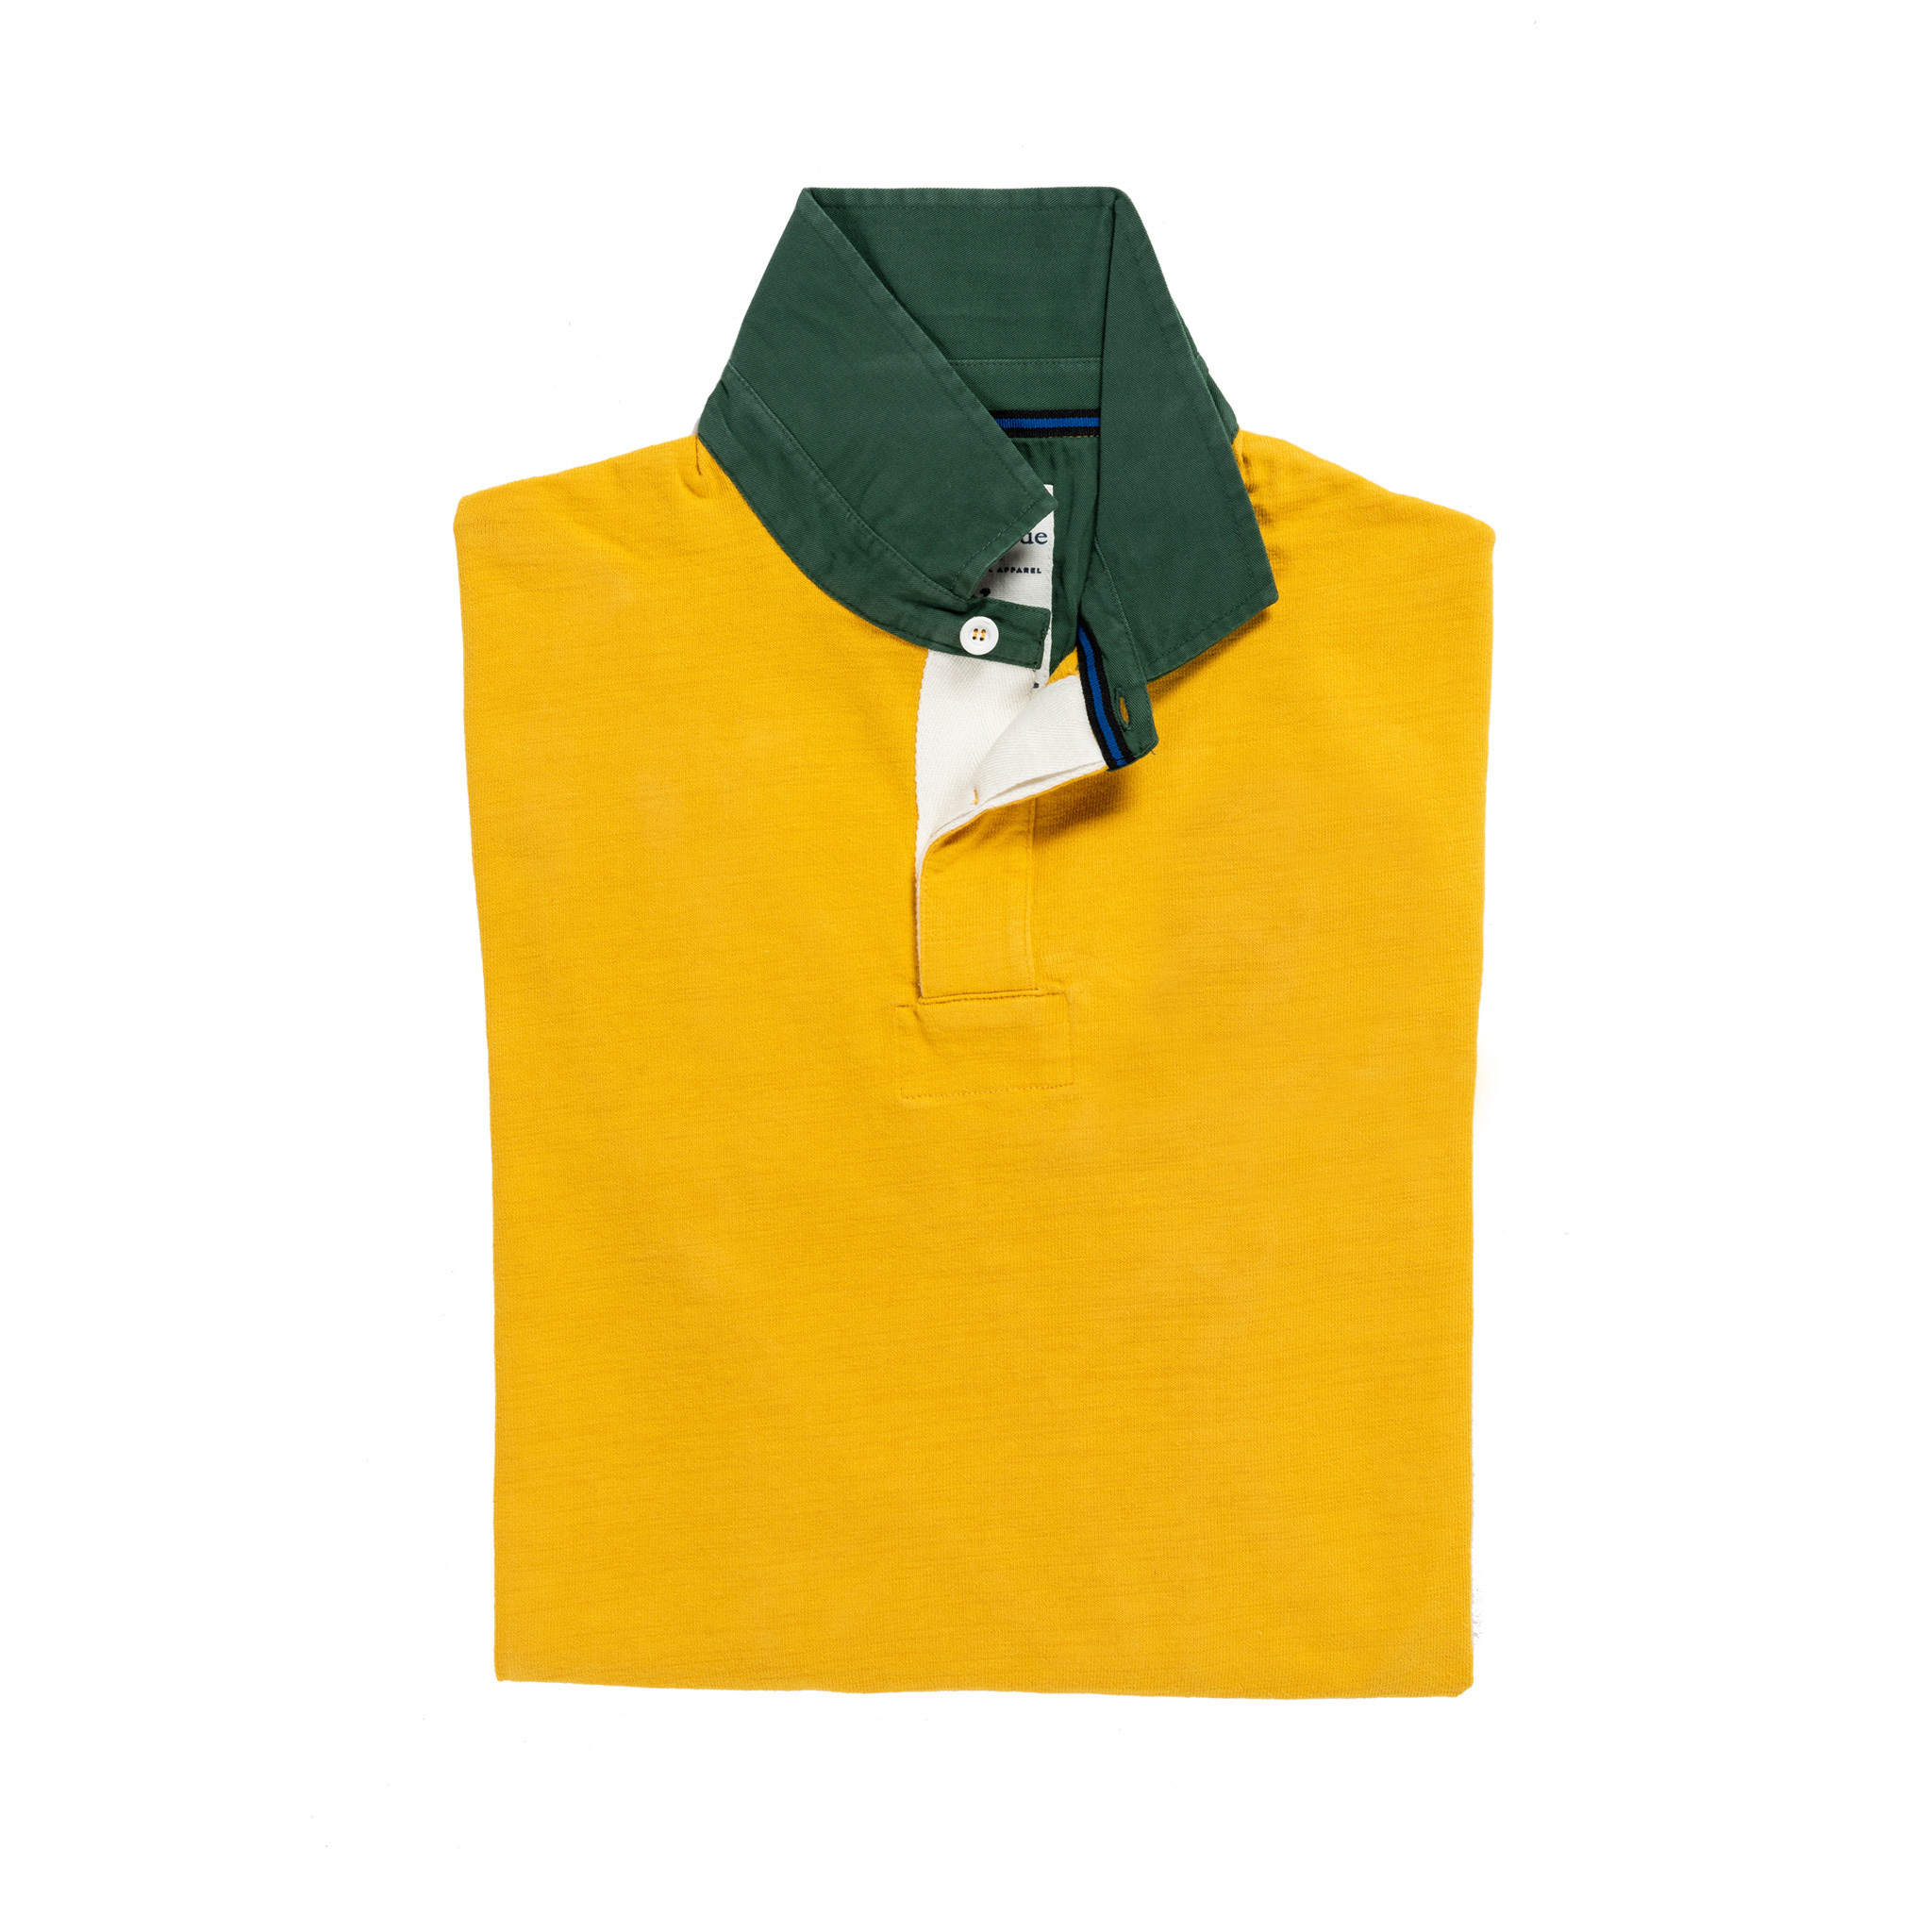 Classic Yellow with Green Collar 1871 Vintage Rugby Shirt